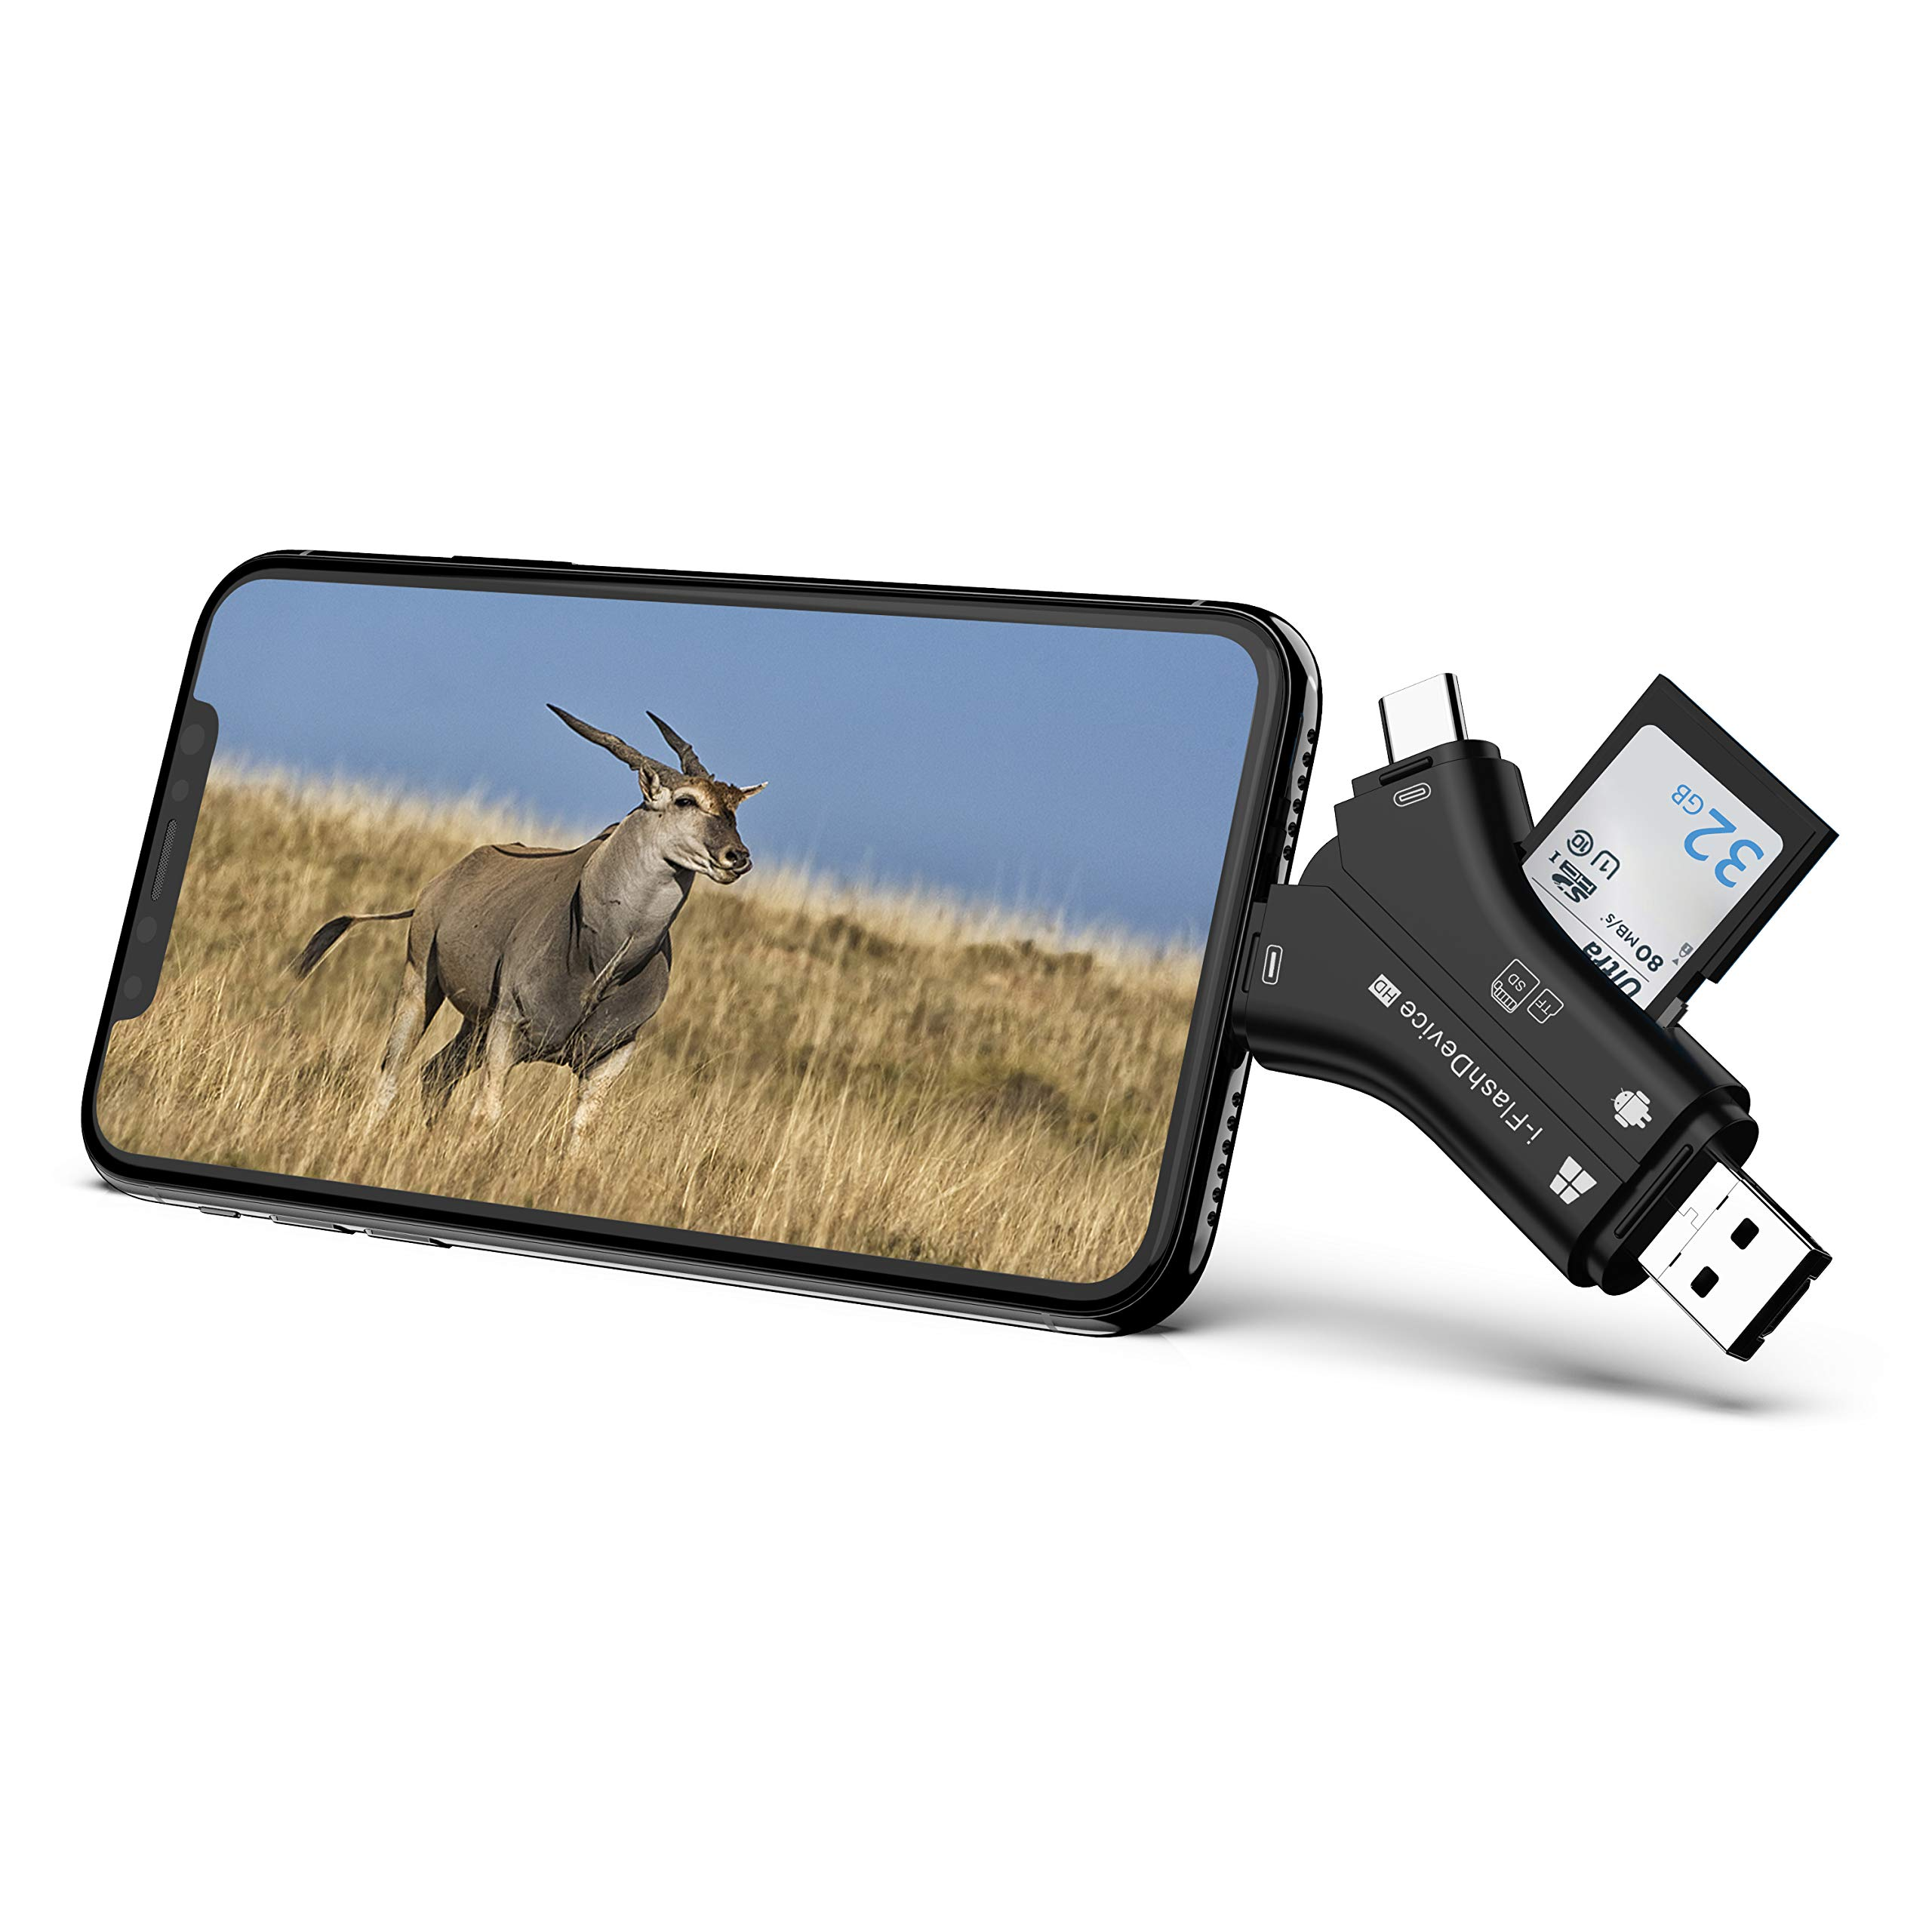 Campark Trail Camera SD Card Viewer Compatible with iPhone iPad Mac or Android, SD and Micro SD Memory Card Reader to…